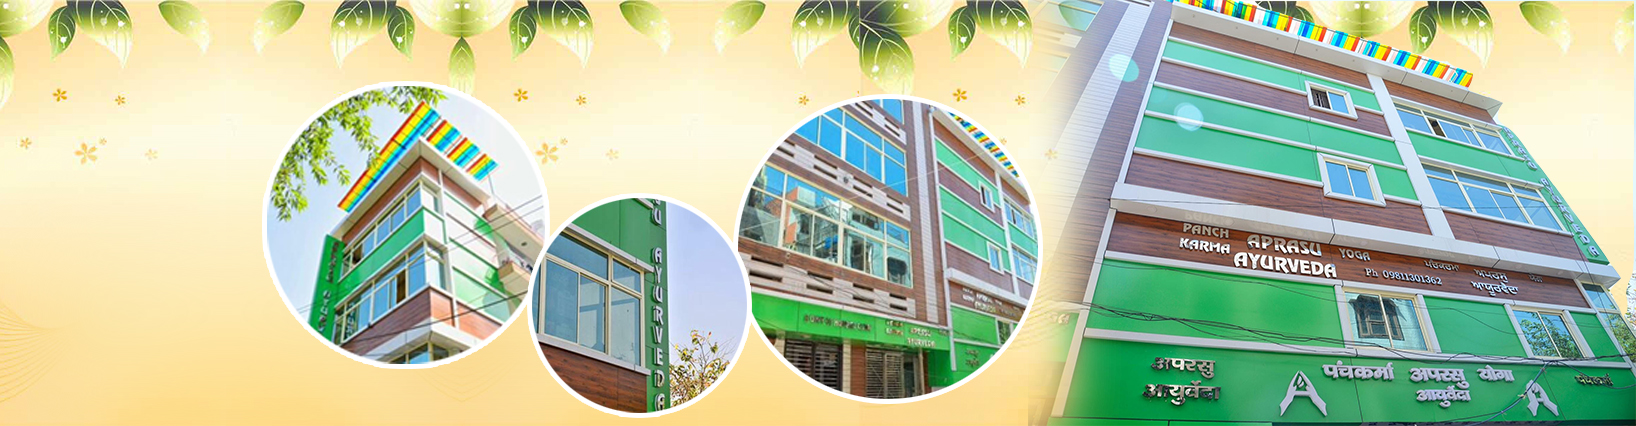 Panchakarma ayurvedic centre in rohini New delhi India